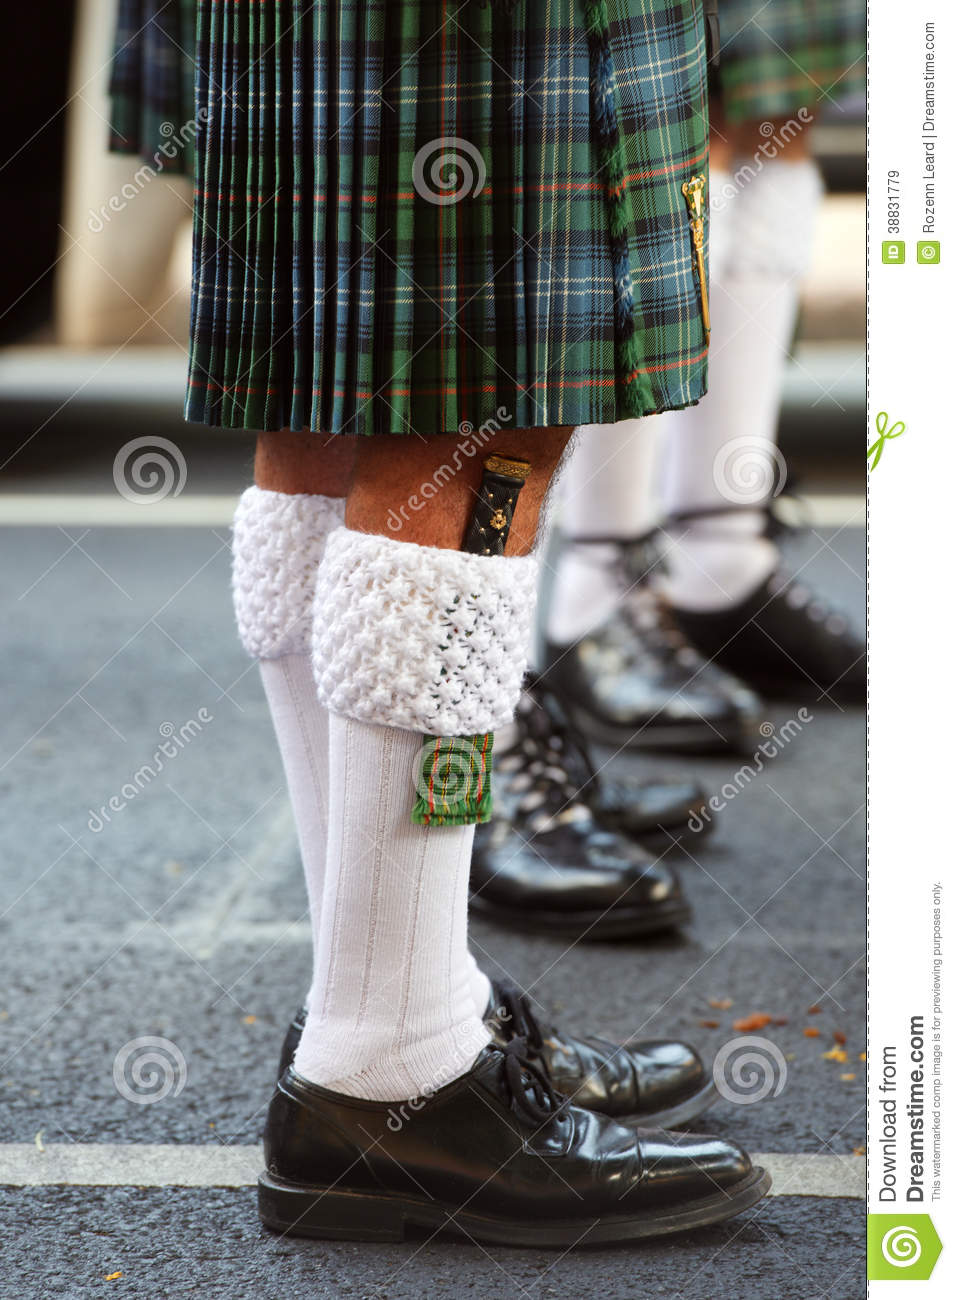 What To Wear As Shoes With Kilt